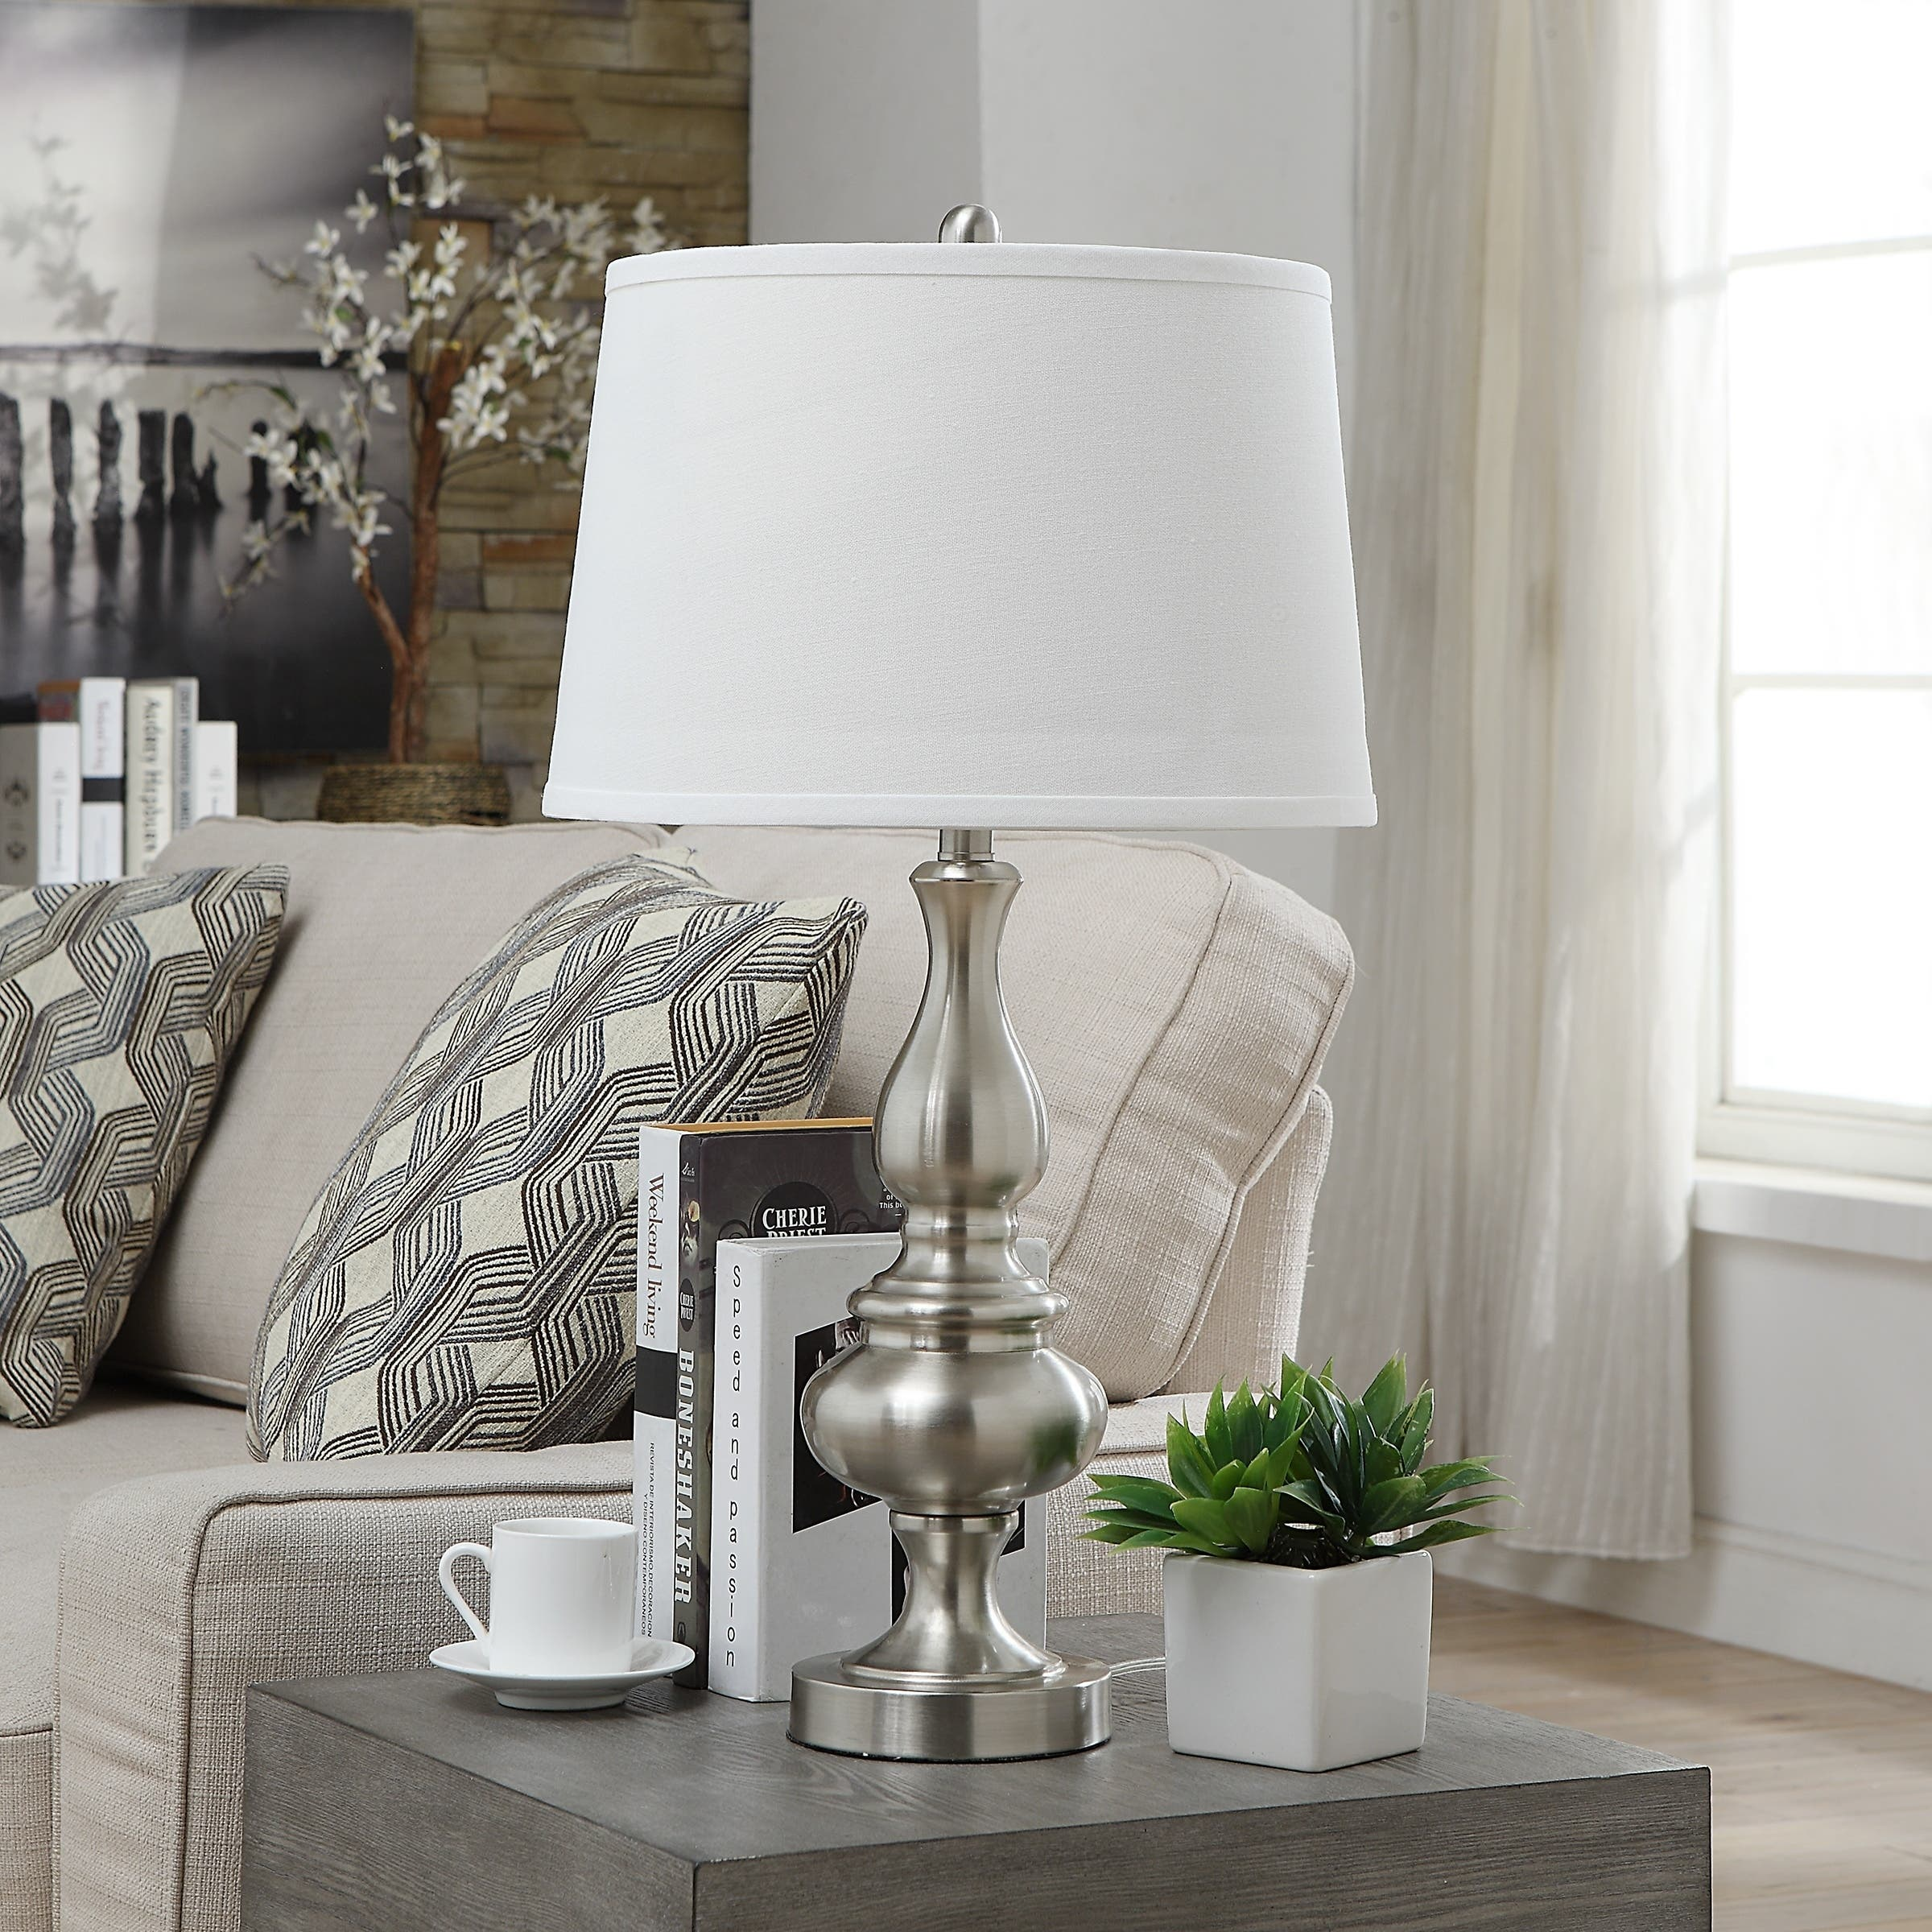 Lighting Shop Sale Cheshire: Find Great Lamps & Lamp Shades Deals